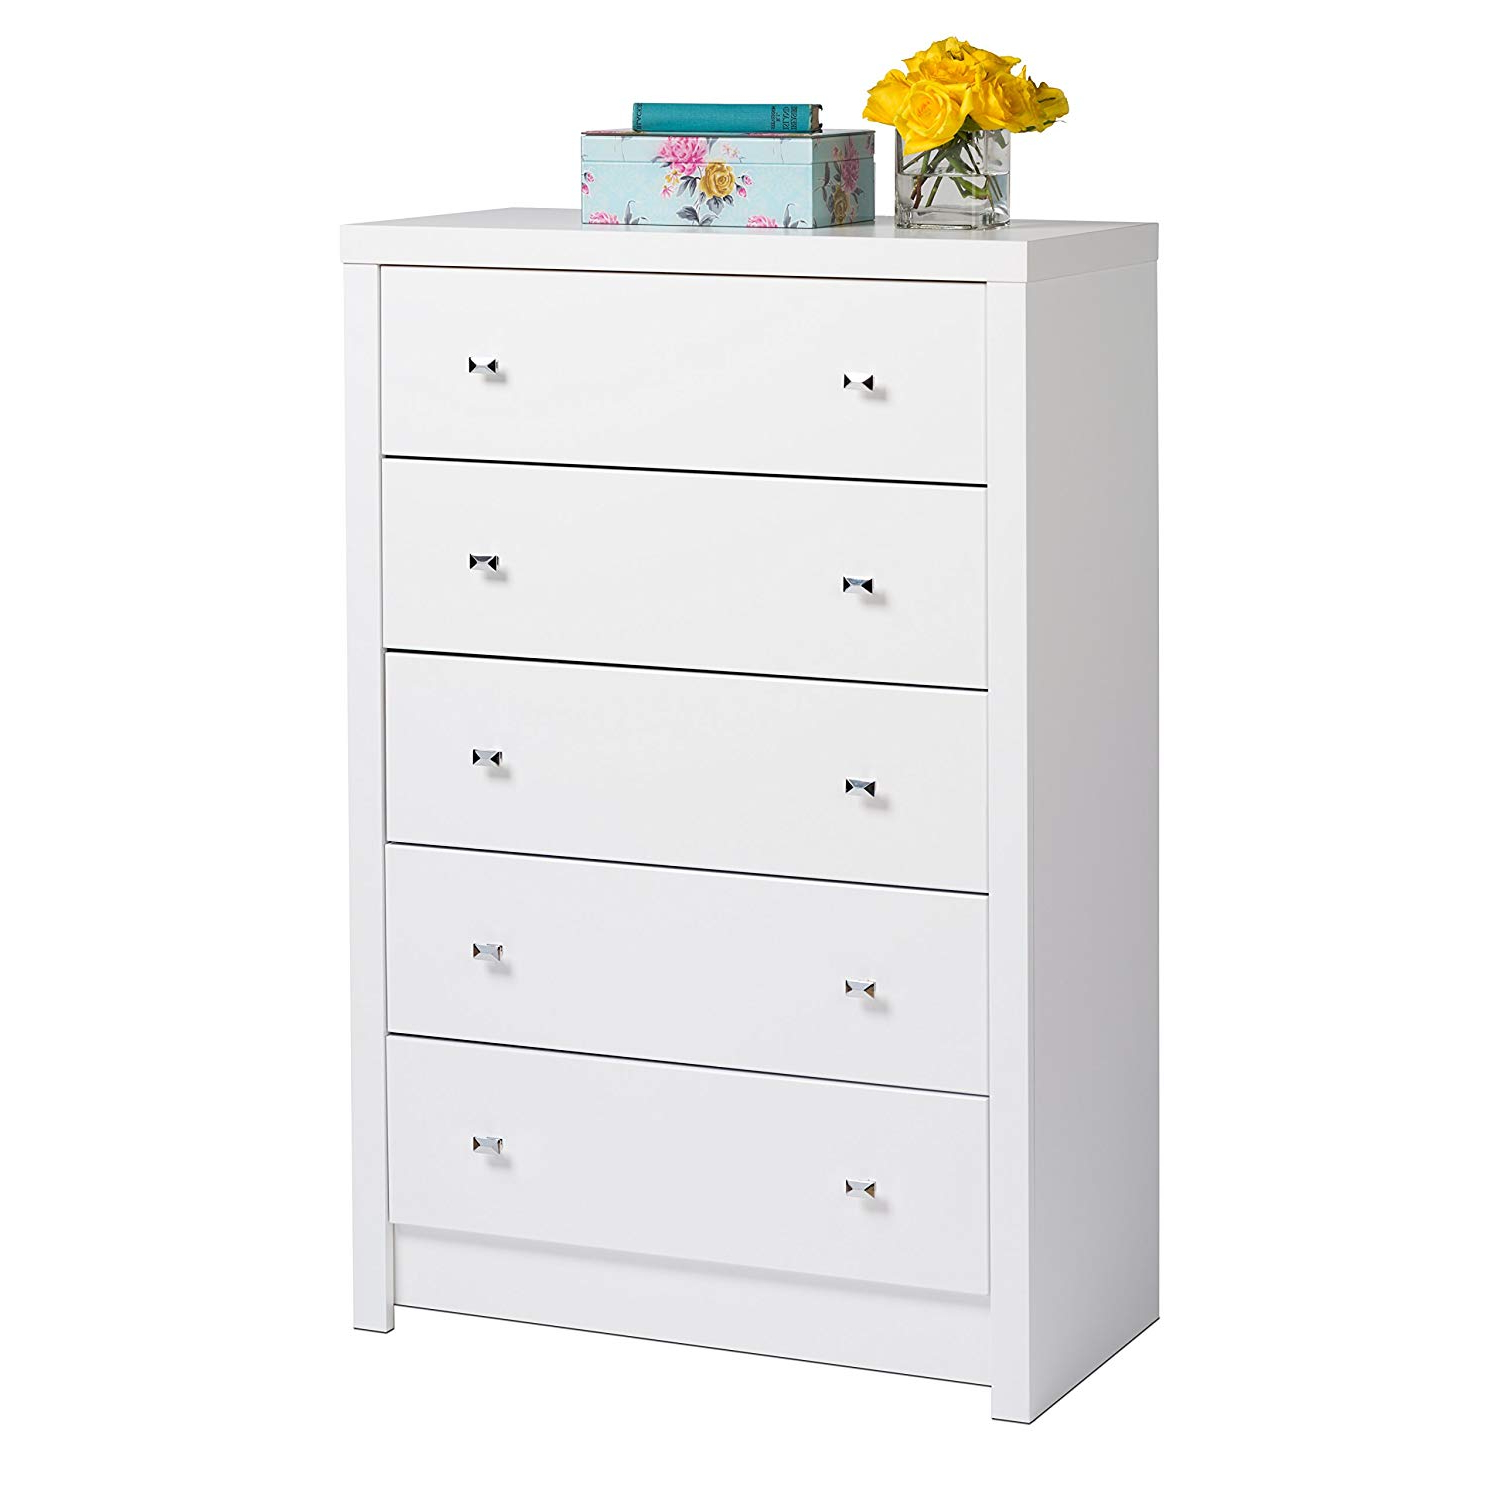 Most Recently Released Calla 5 Piece Dining Sets With Regard To Amazon: Prepac Wdbr 0550 1 White Calla 5 Drawer Chest, King (View 21 of 25)